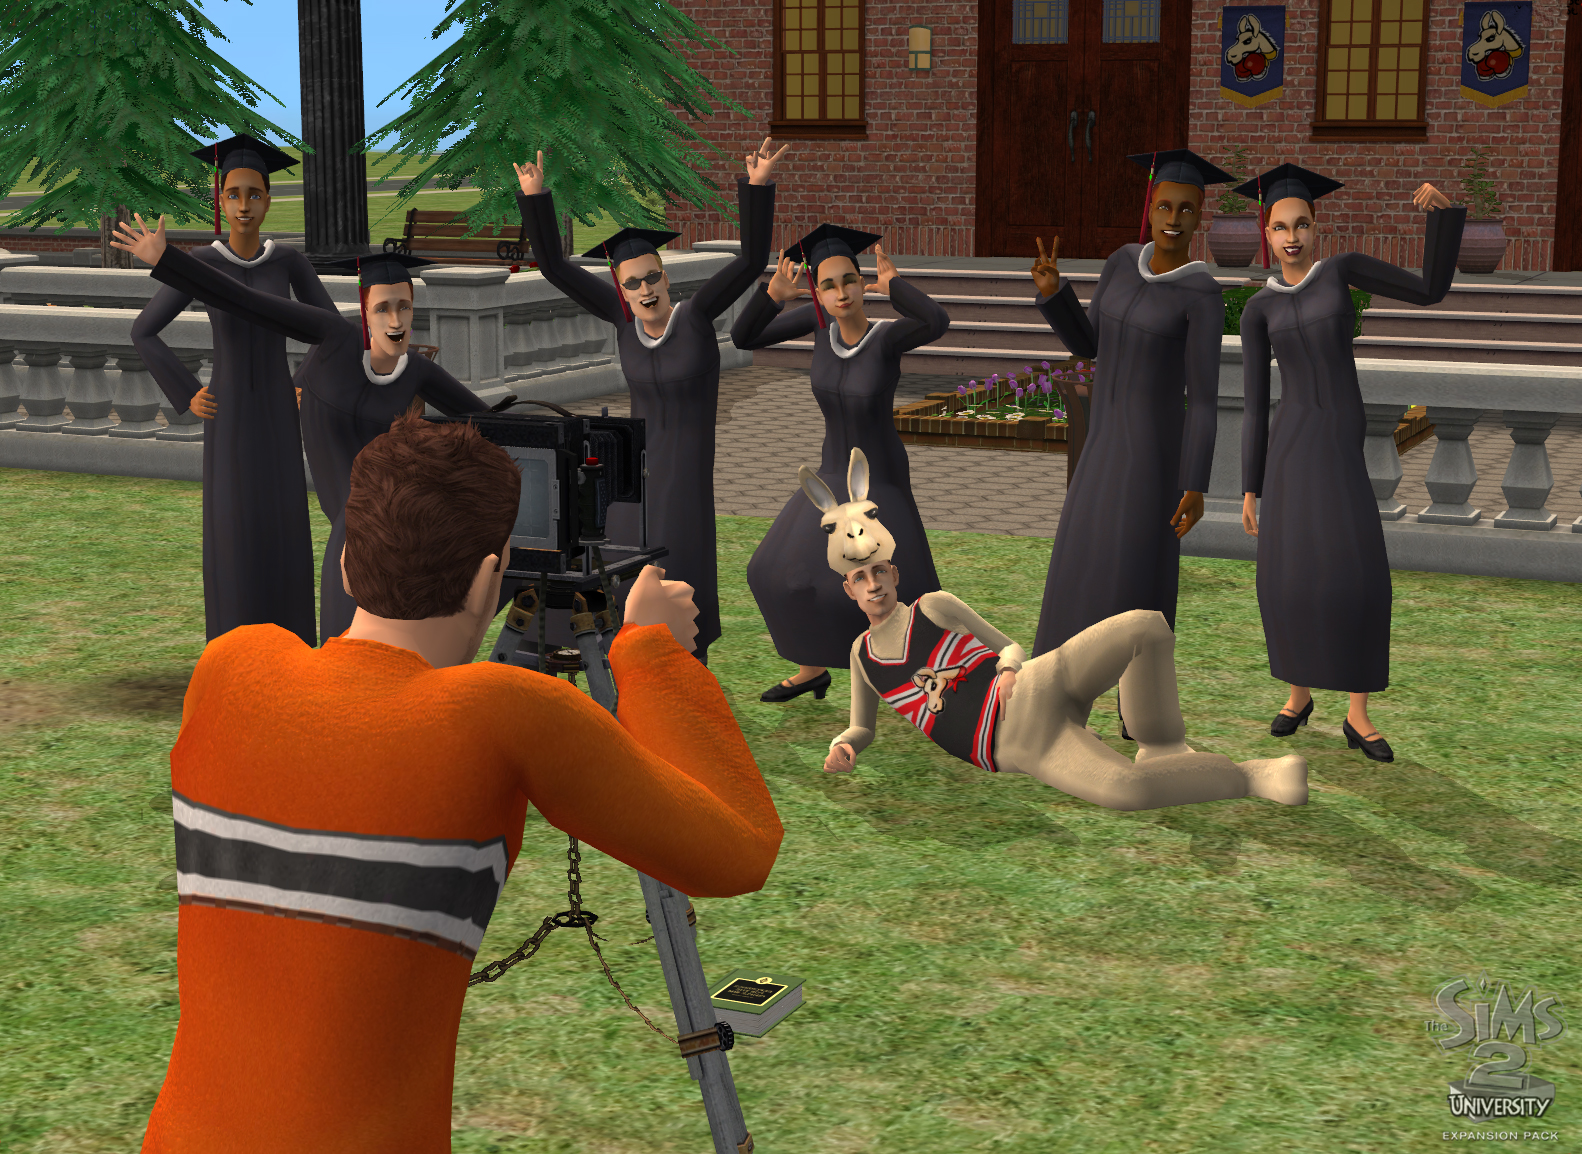 sims 2 university, sims 2 university life, best sims expansions